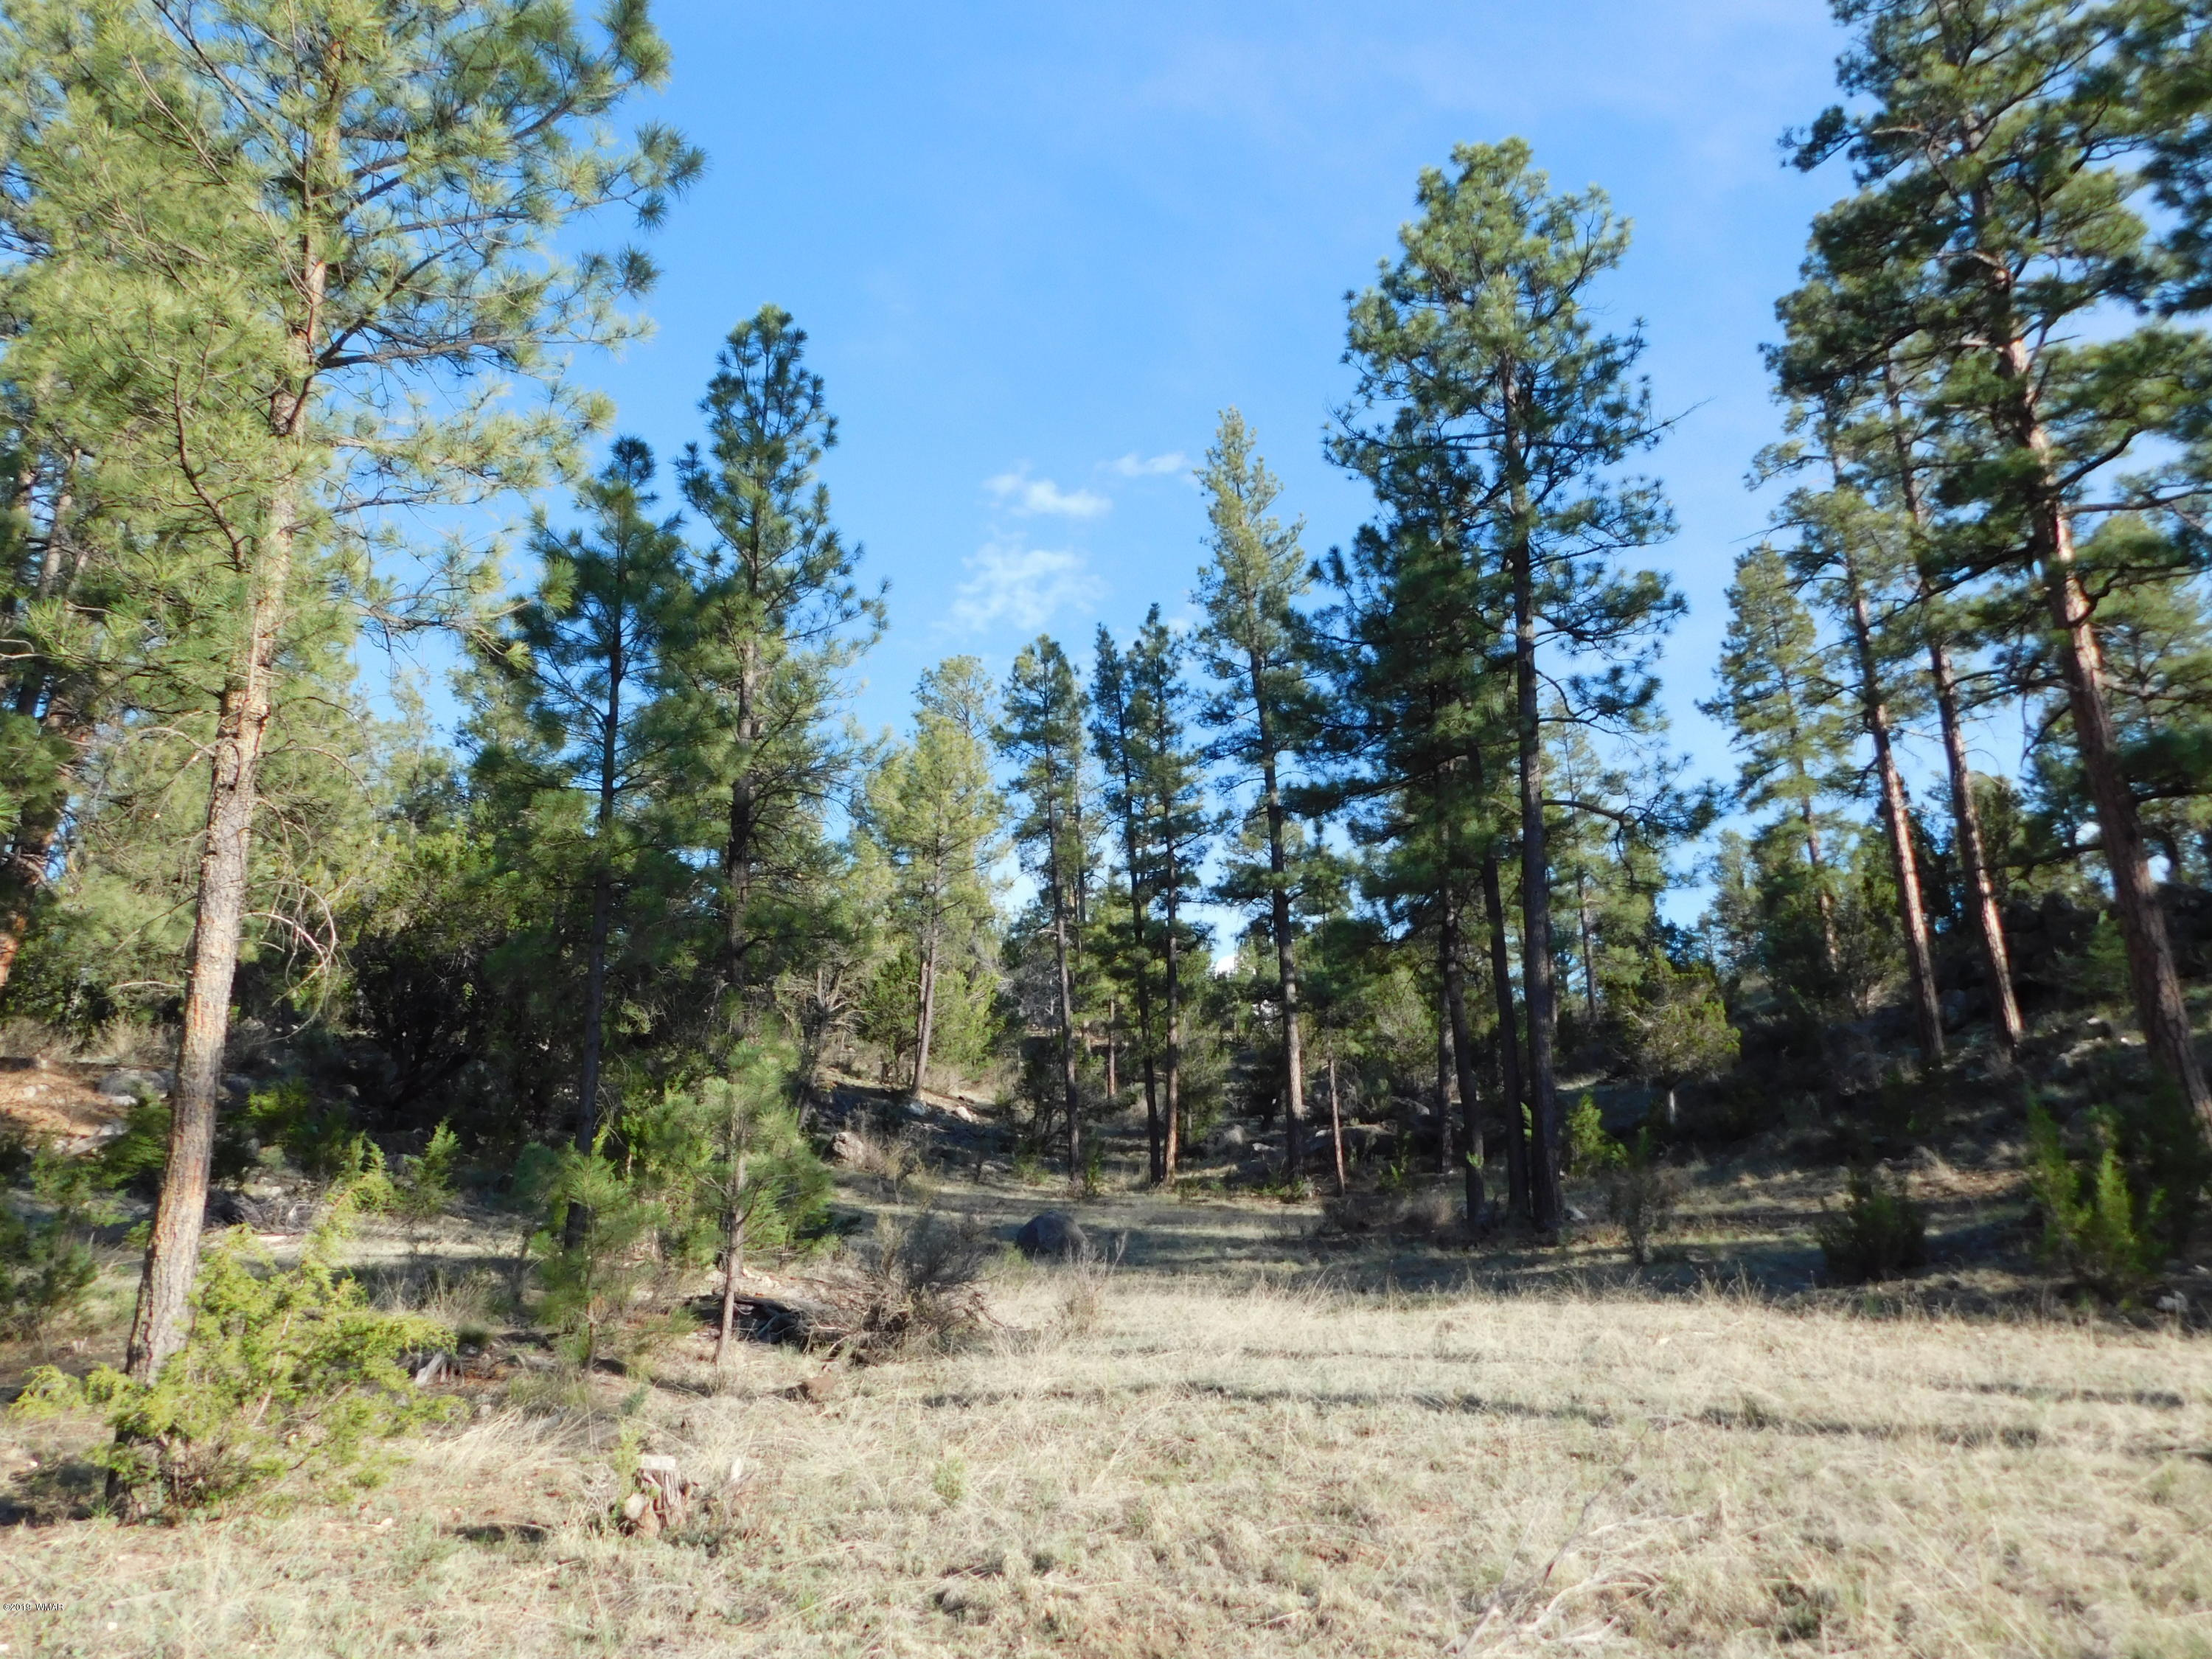 Rare and hard to find 4.09 acre homesite with trees, views, level & horses allowed!  This lot has it all with level area for horses and build your home nestled on the elevated portion with unique rock formations out your back door, allowing for a walkout/daylight basement and views!  The county maintained gravel road isn't far from paved and seasonal wash adds to the character.  Ride your horse to national forest as it's just a short distance away and best yet, the water is included in the low HOA dues!  Parcels like this don't come along often so don't wait, or it will be ''Too Late''.  Don't need 4 acres, you can split and sell after purchase as the subdivision is one acre minimum.  Best part, 2 forms of access off Ridge Road or Green Valley.  Build on top and